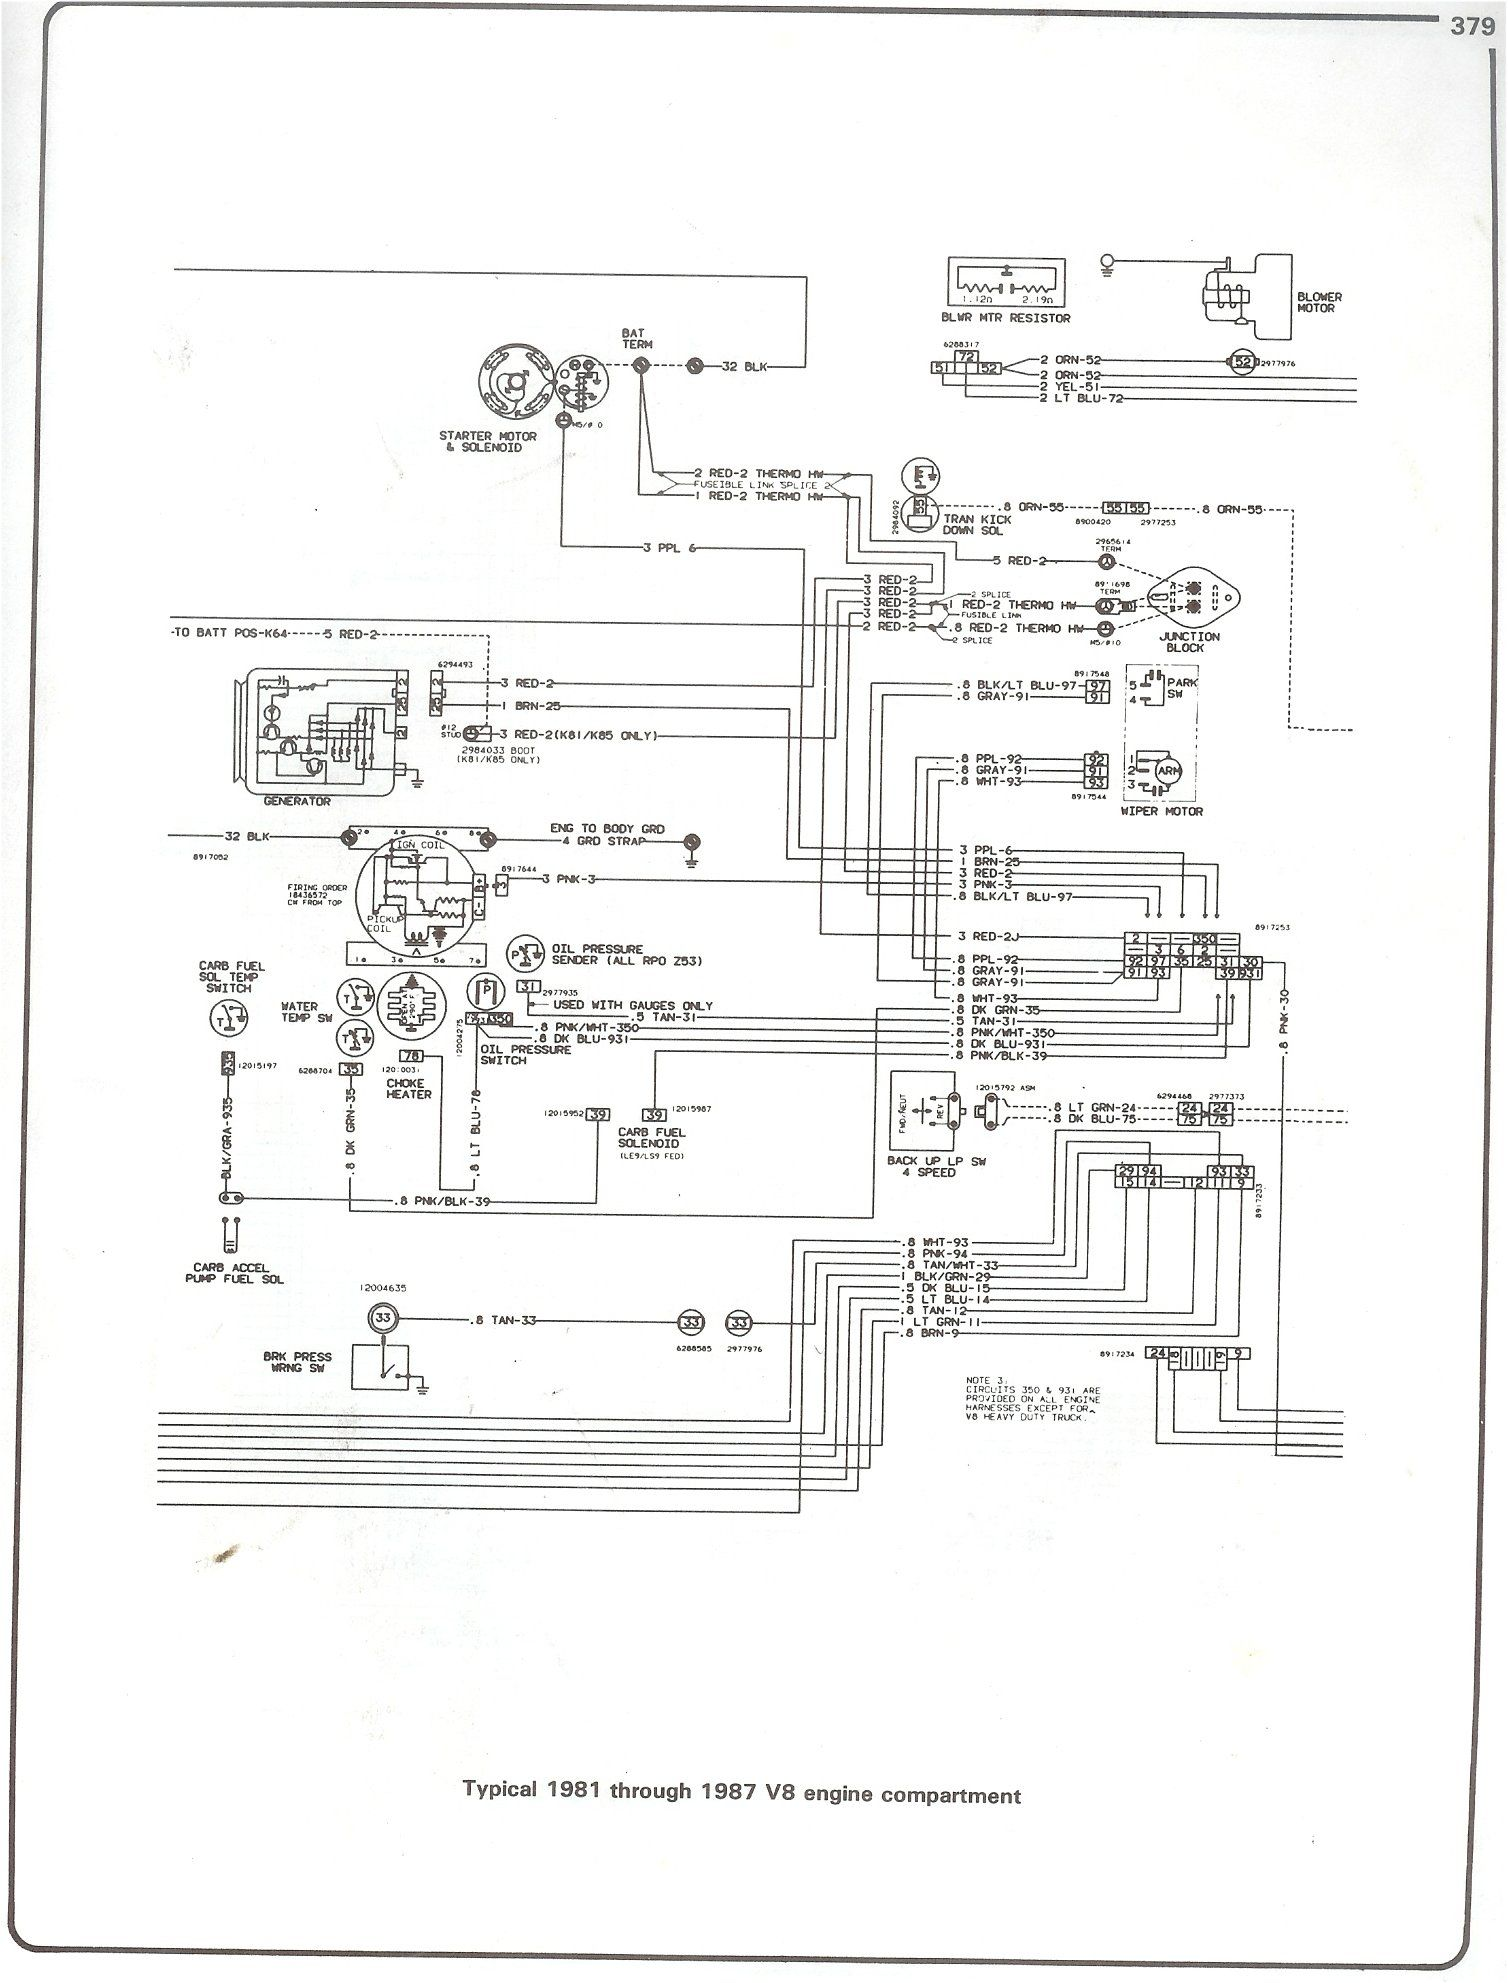 pin by malcolm cail on projects to try | 87 chevy truck ... 87 c10 wiring diagram